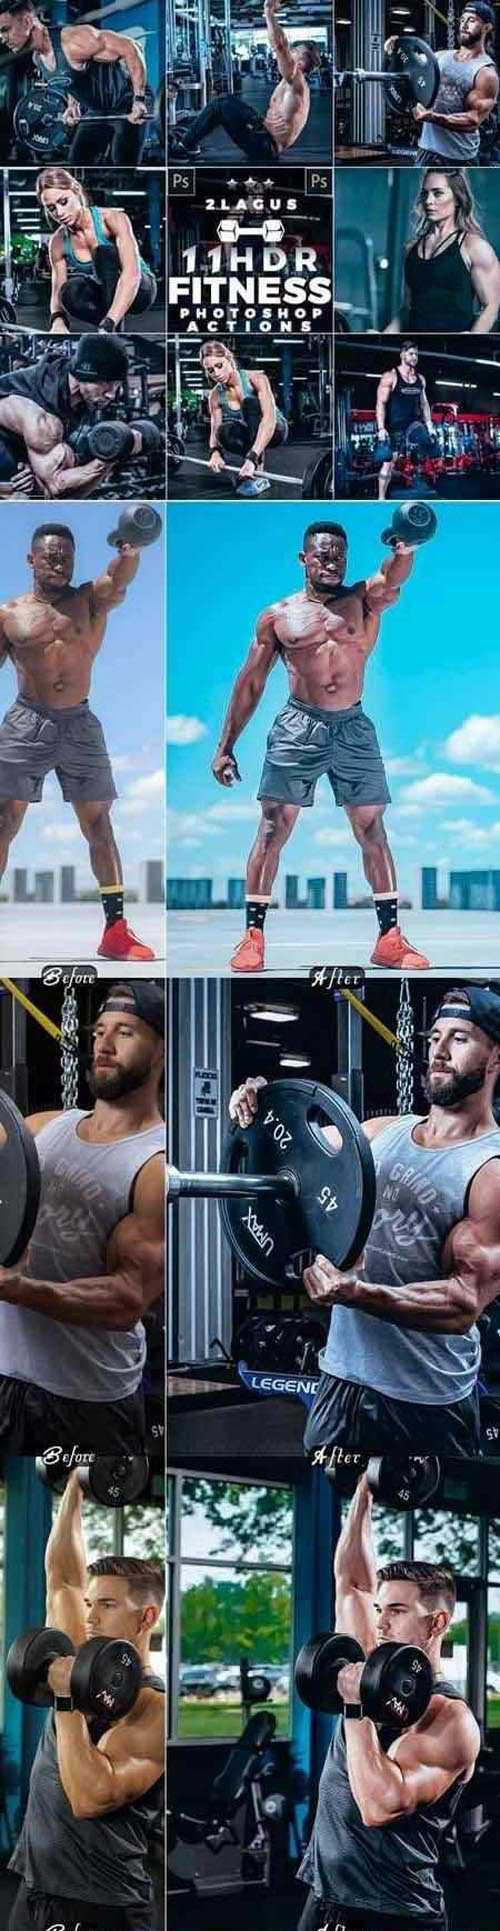 HDR Fitness Photoshop Actions 26426987